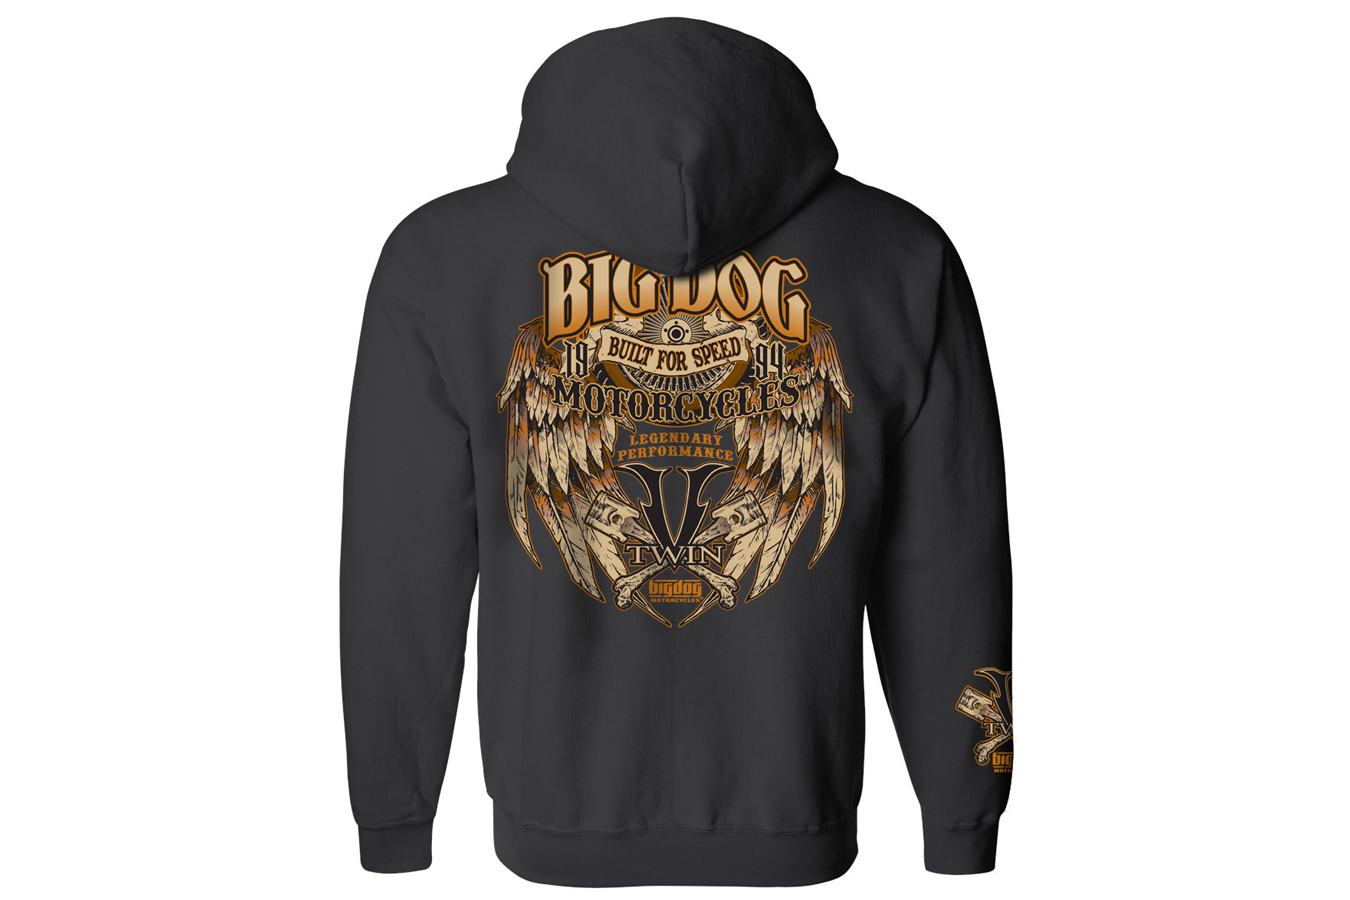 small resolution of big dog motorcycles built for speed full zip hoodie black 54 95 58 95